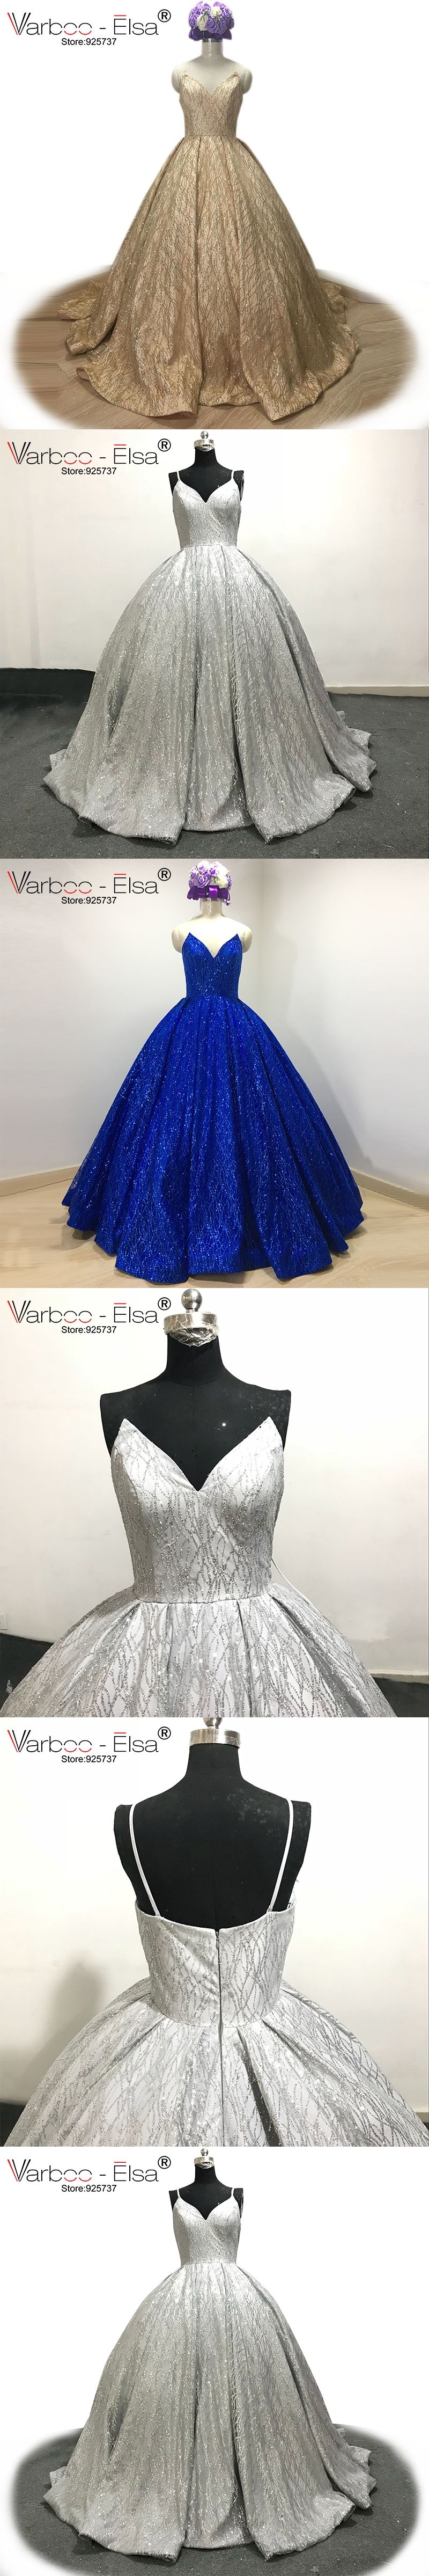 VARBOO ELSA 2017 New Shiny Silver ballgown Sequined Sexy V-neck Prom Gown  Detachable Shoulder Strap 831ca322e54a